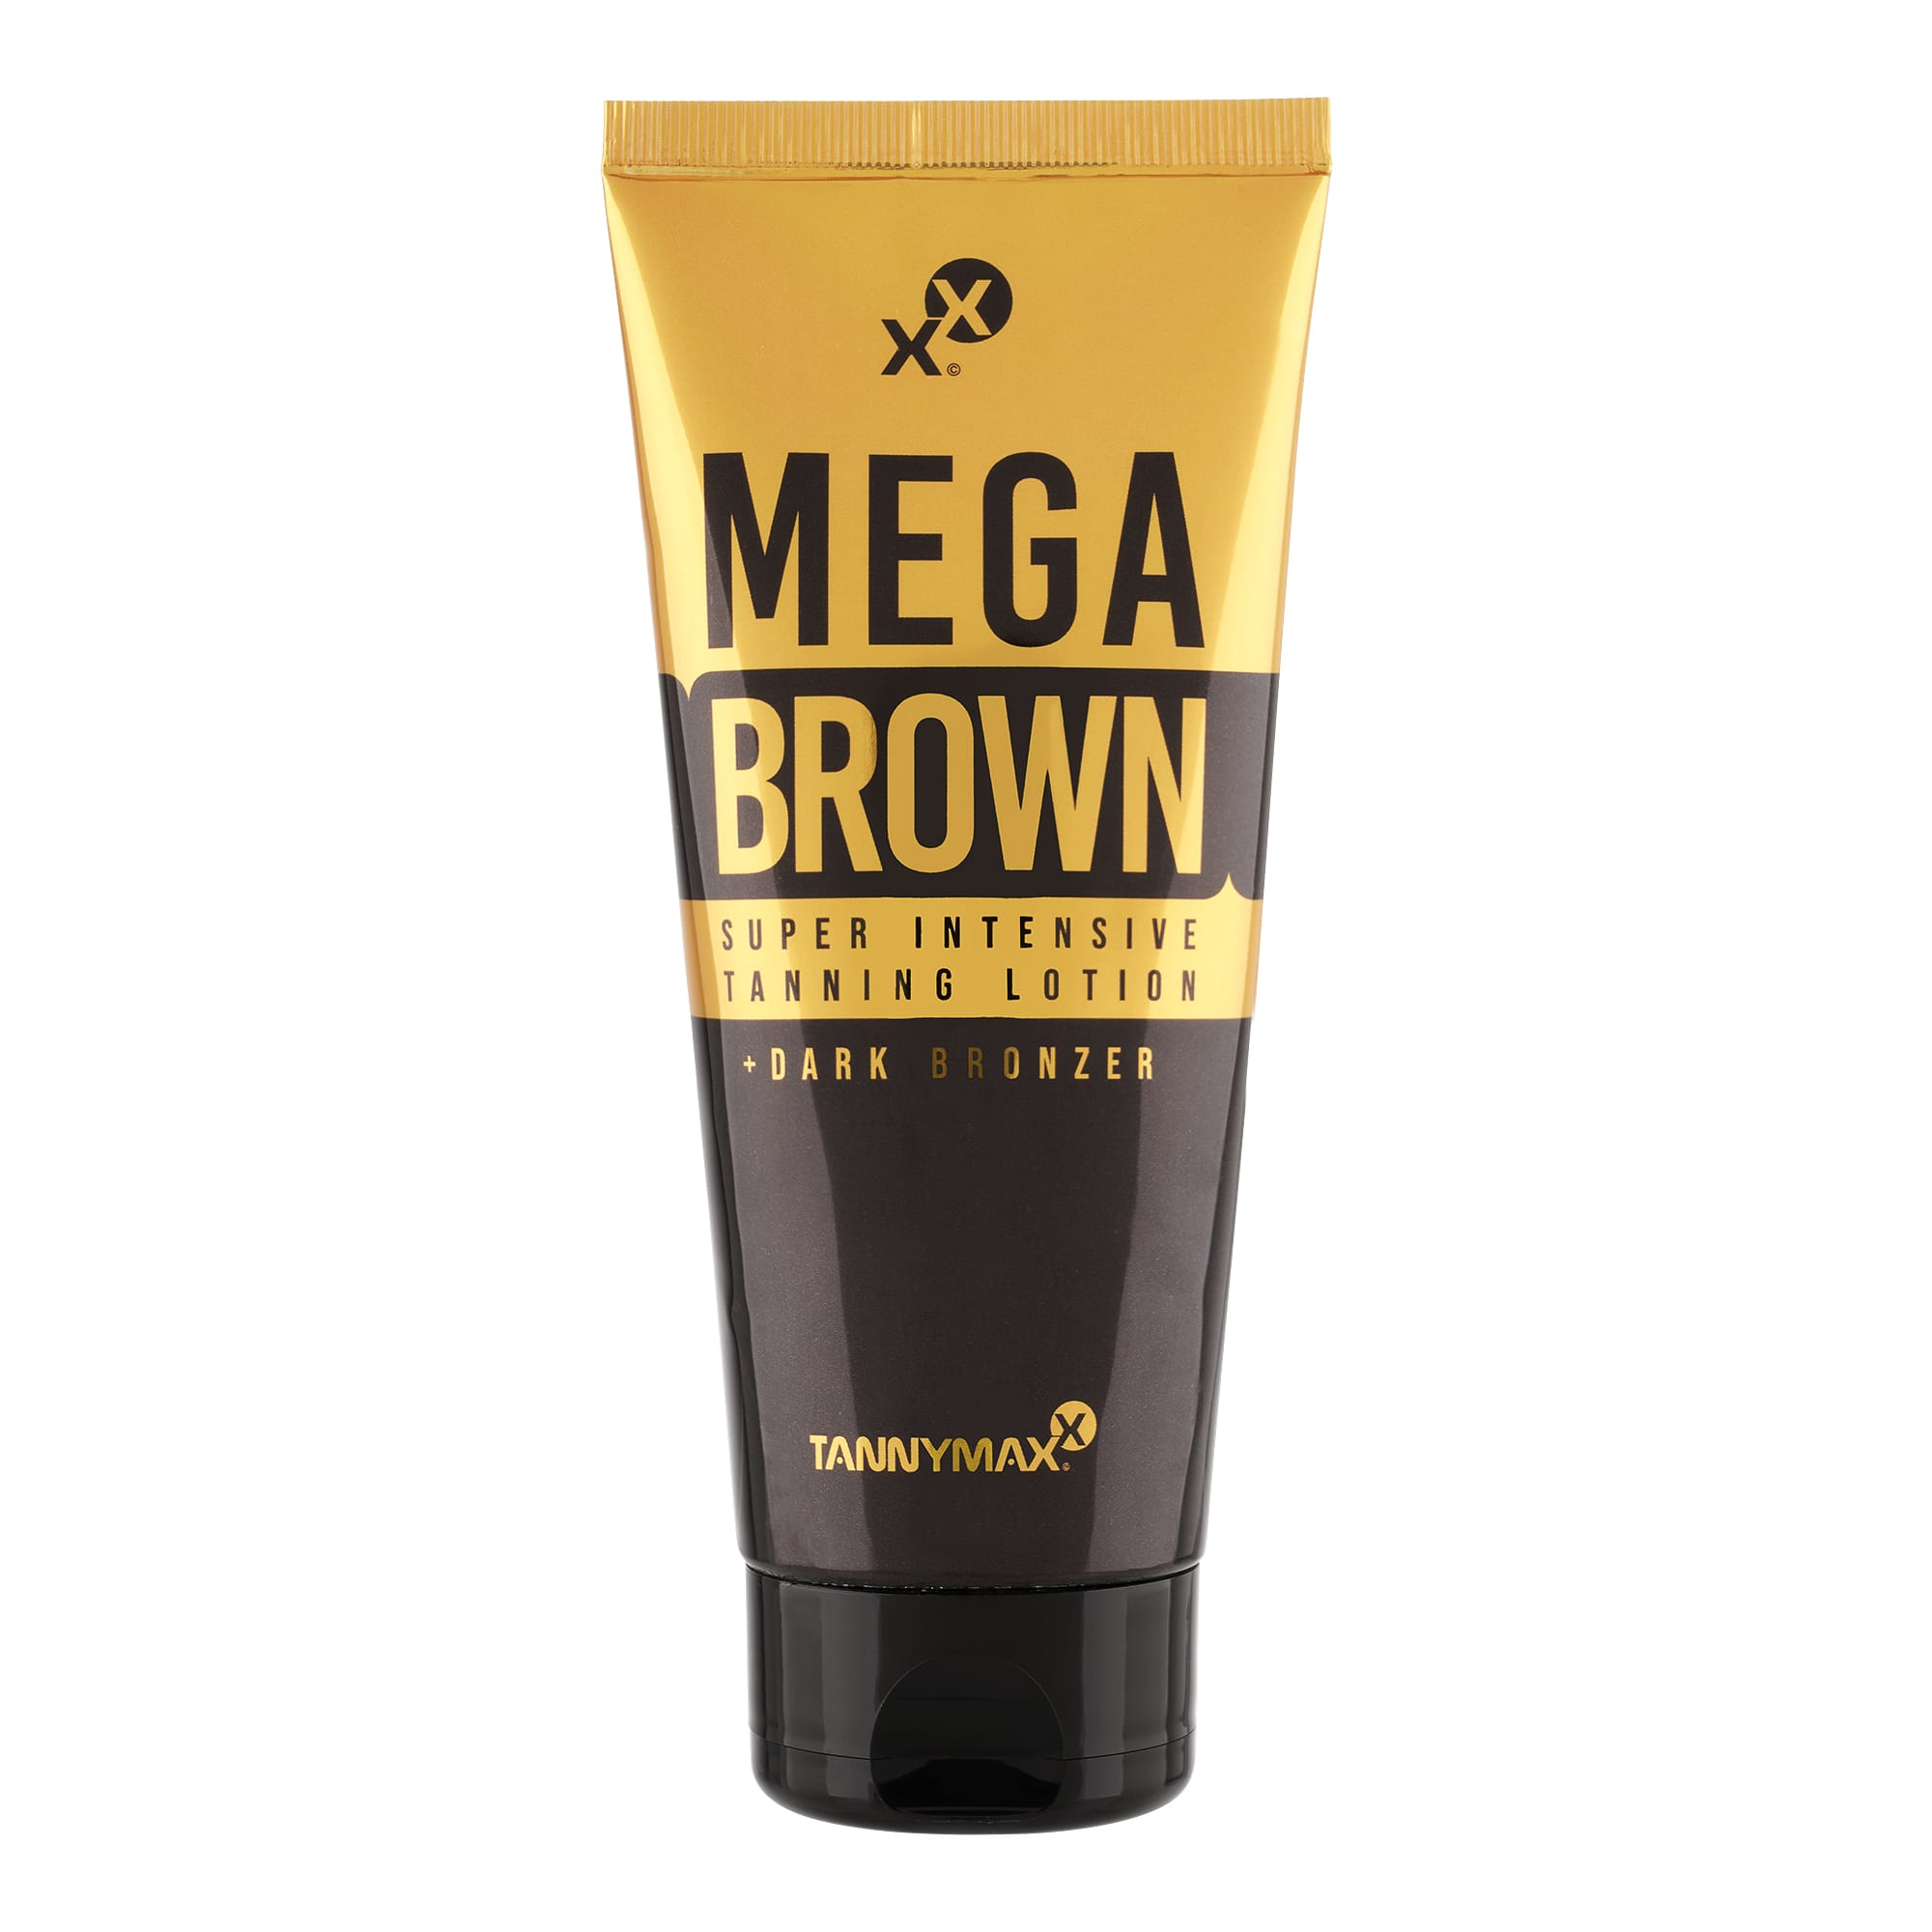 MegaBrown Super Intensive Tanning Lotion + Dark Bronzer